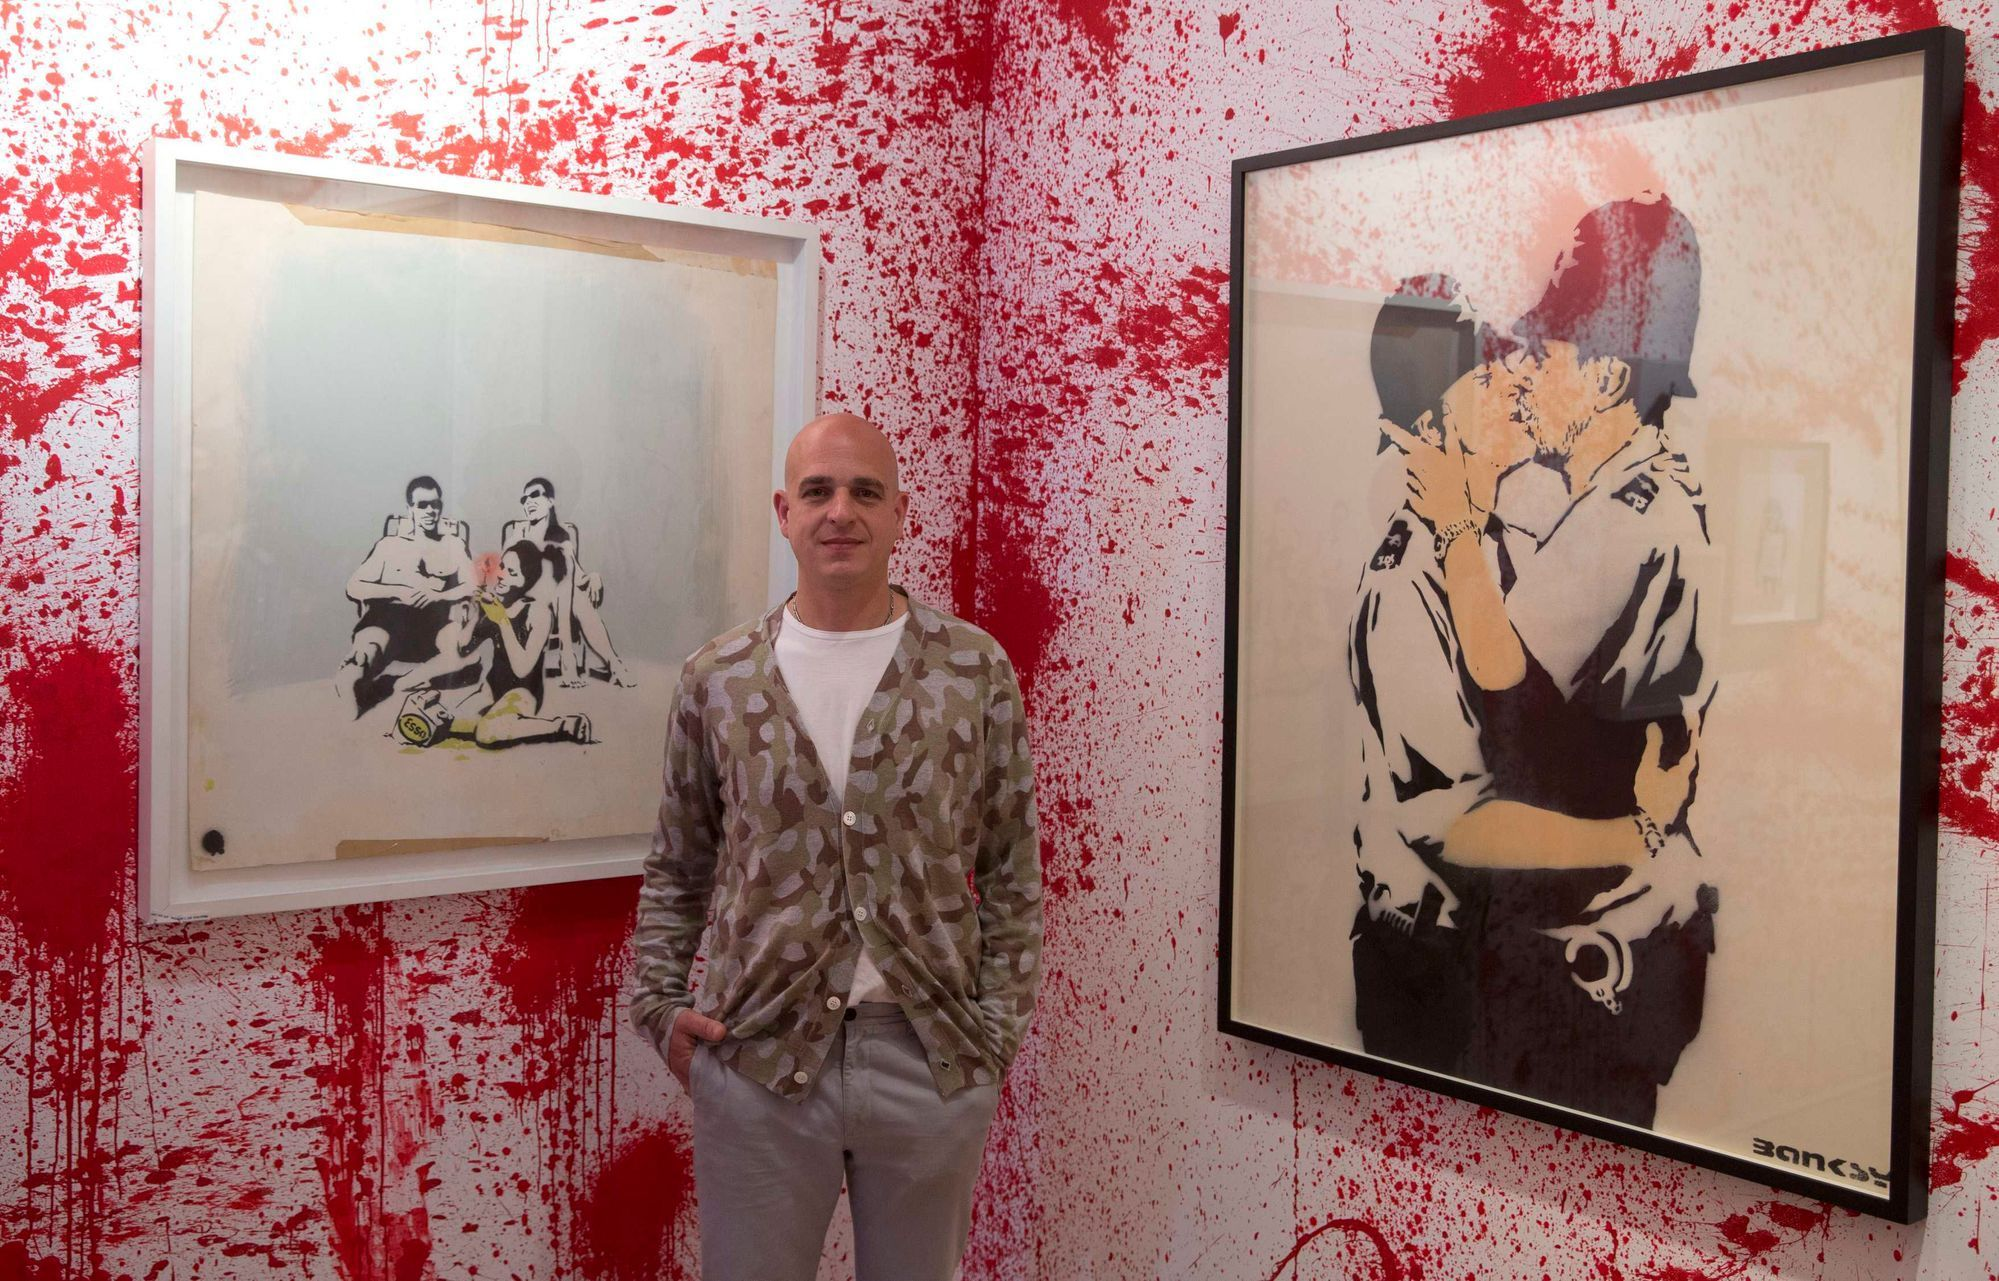 Curator Steve Lazarides poses for photograph at the Banksy: The Unauthorised Retrospective at Sotheby's S2 Gallery in London